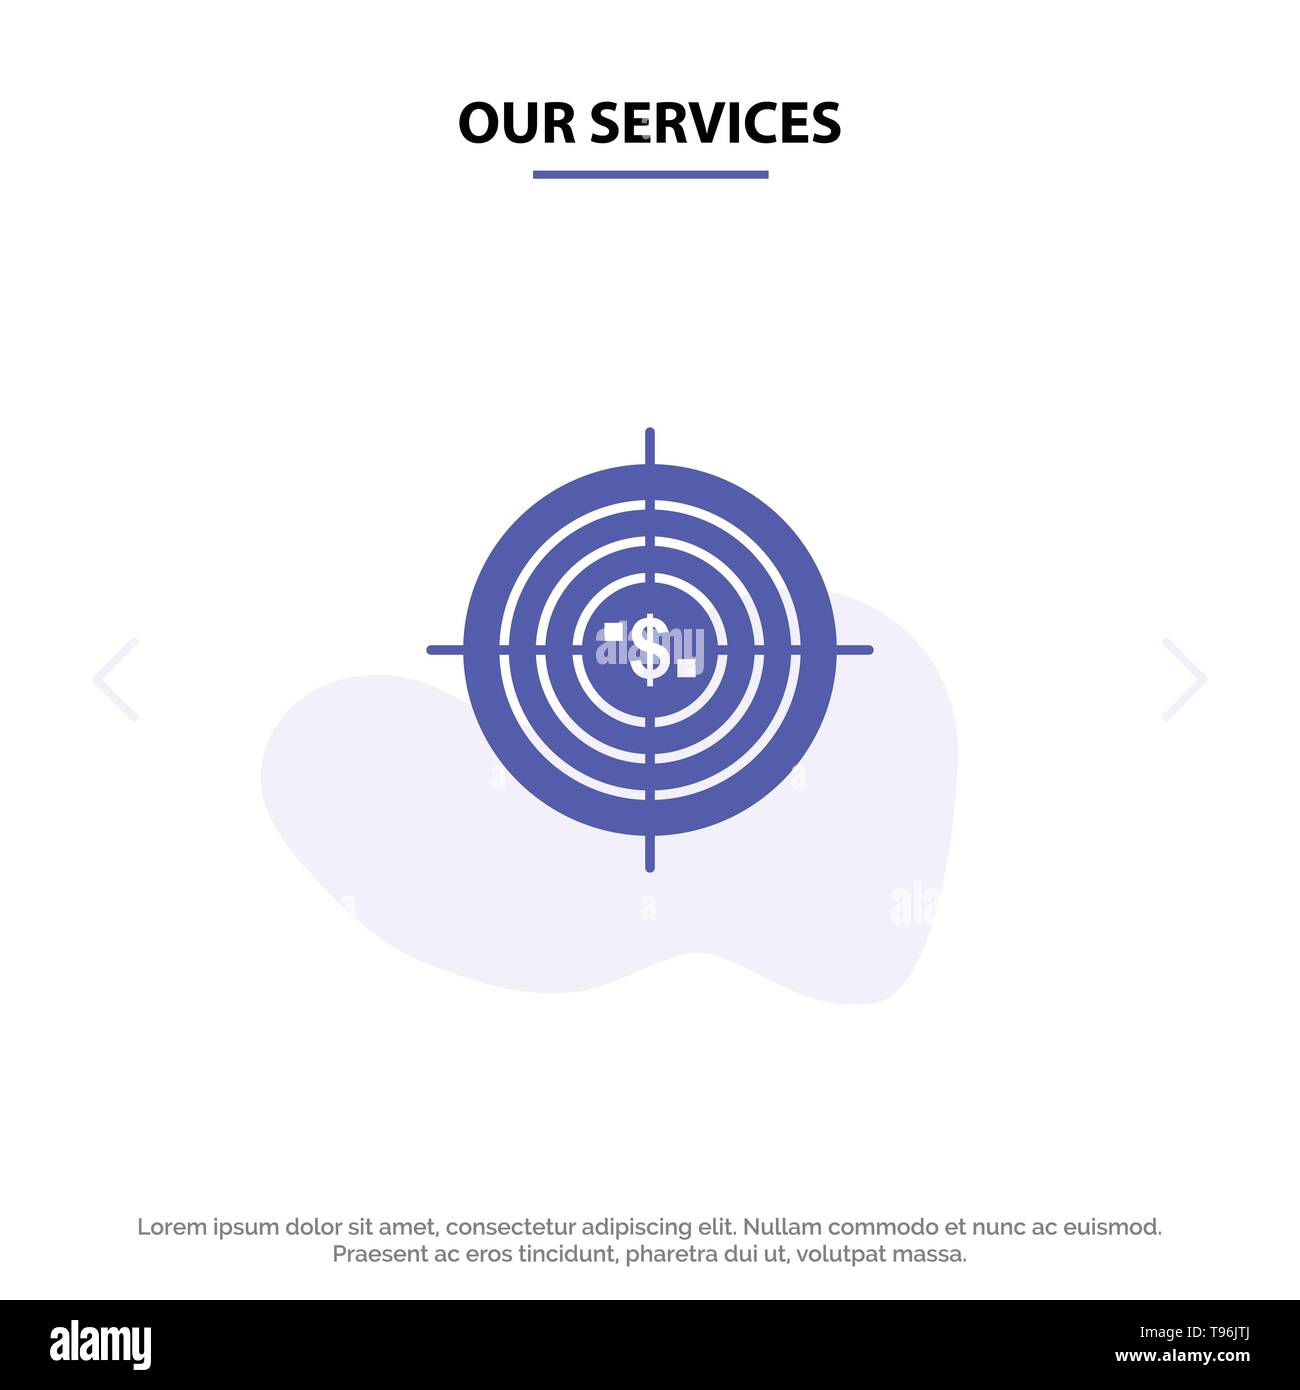 Our Services Target, Aim, Business, Cash, Financial, Funds, Hunting, Money Solid Glyph Icon Web card Template - Stock Image